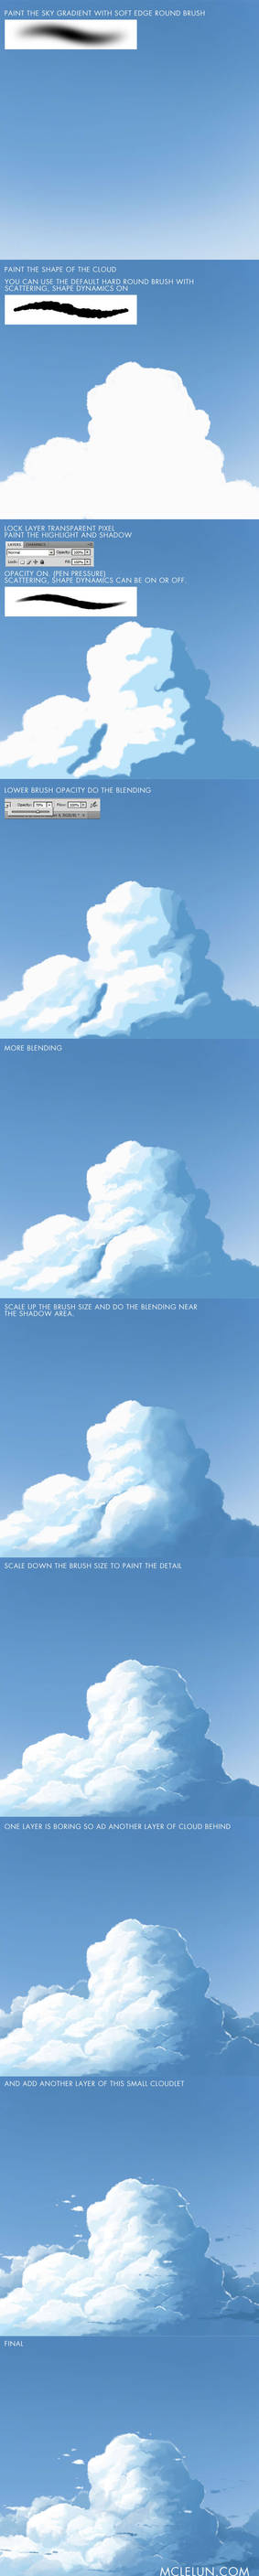 Painting Anime Style Cumulus Cloud